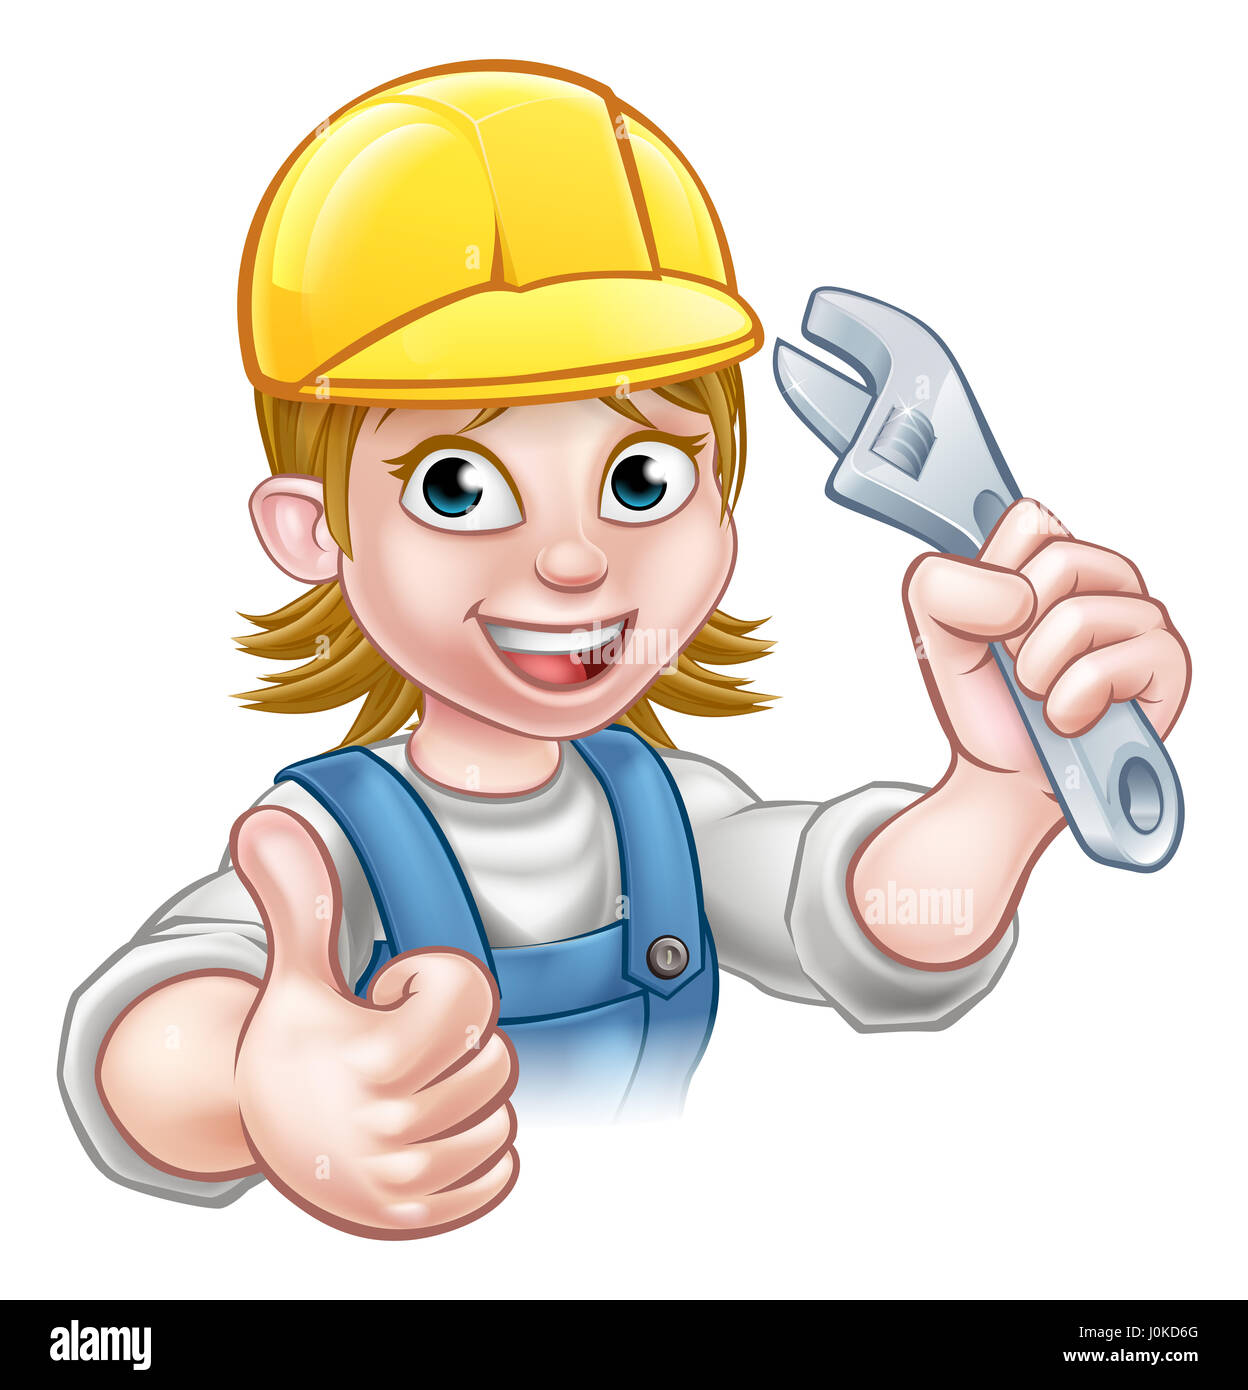 A handyman mechanic or plumber cartoon character holding a spanner and  giving a thumbs up 09434defe5d8